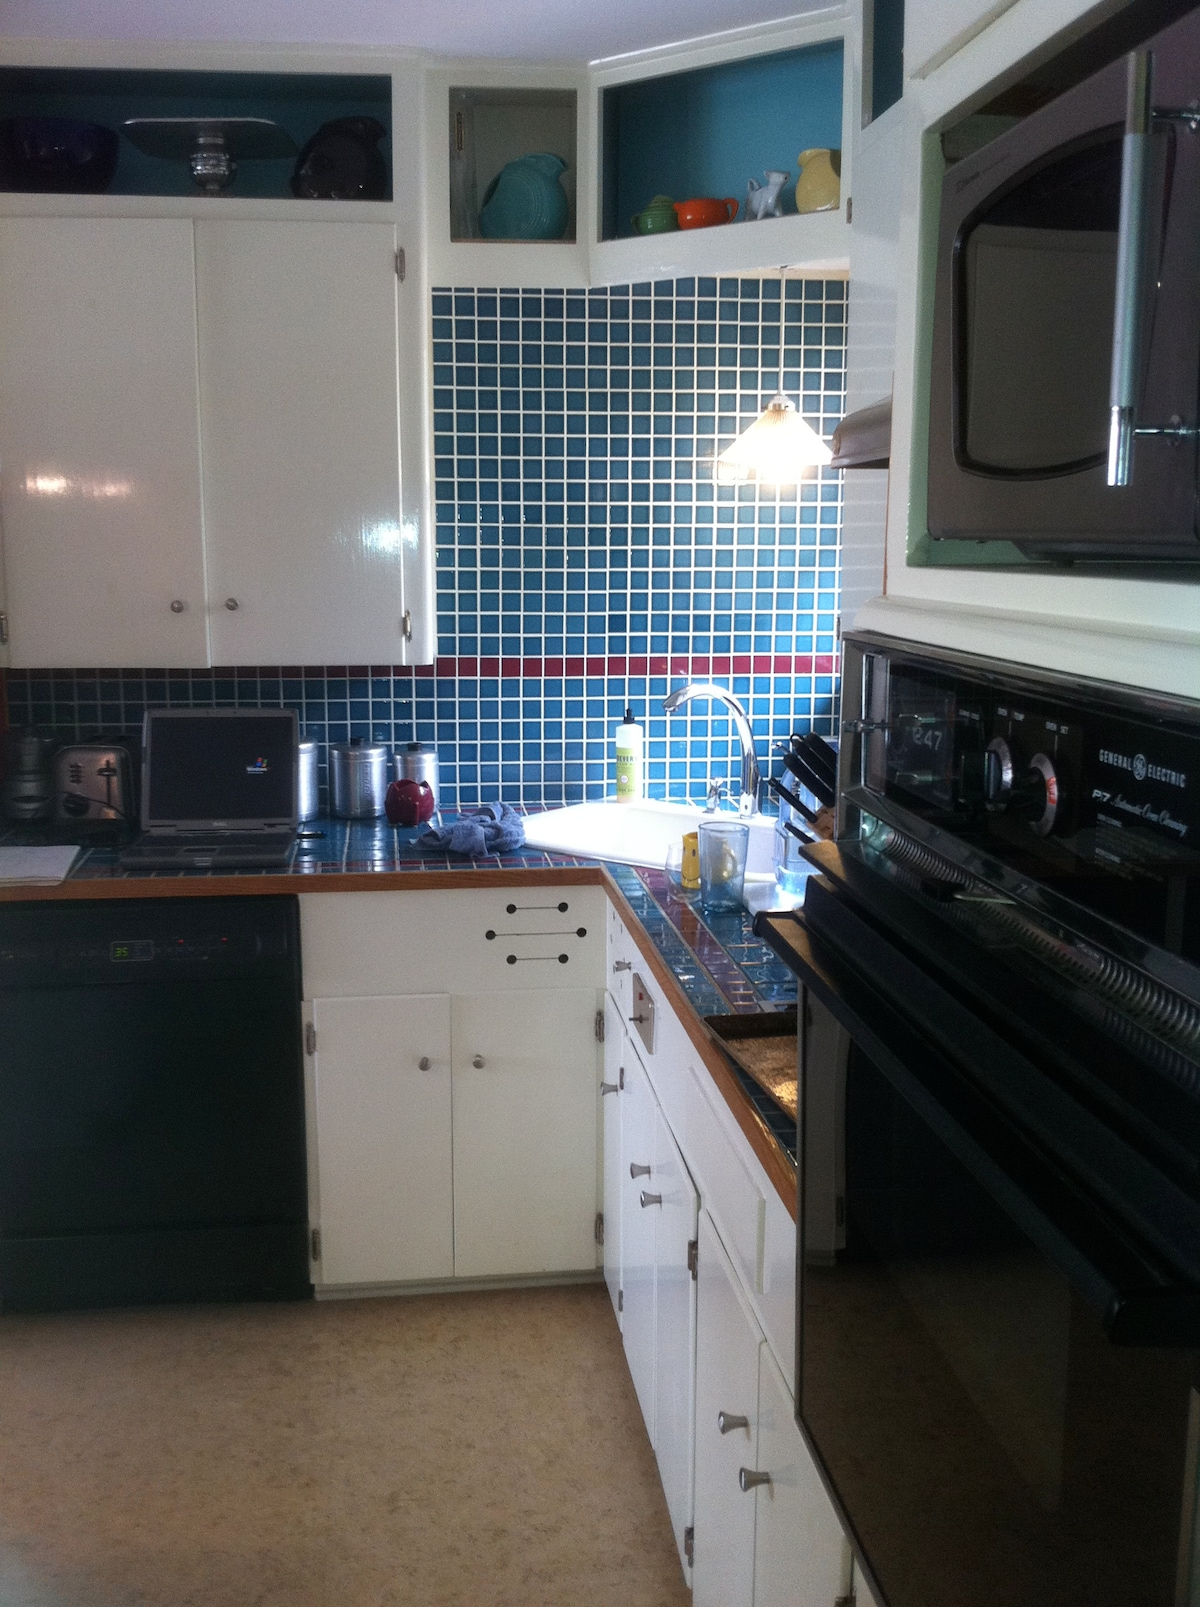 Kitchen with corner sink, dishwasher, window looking into backyard, gas cooking, stove and microwave.